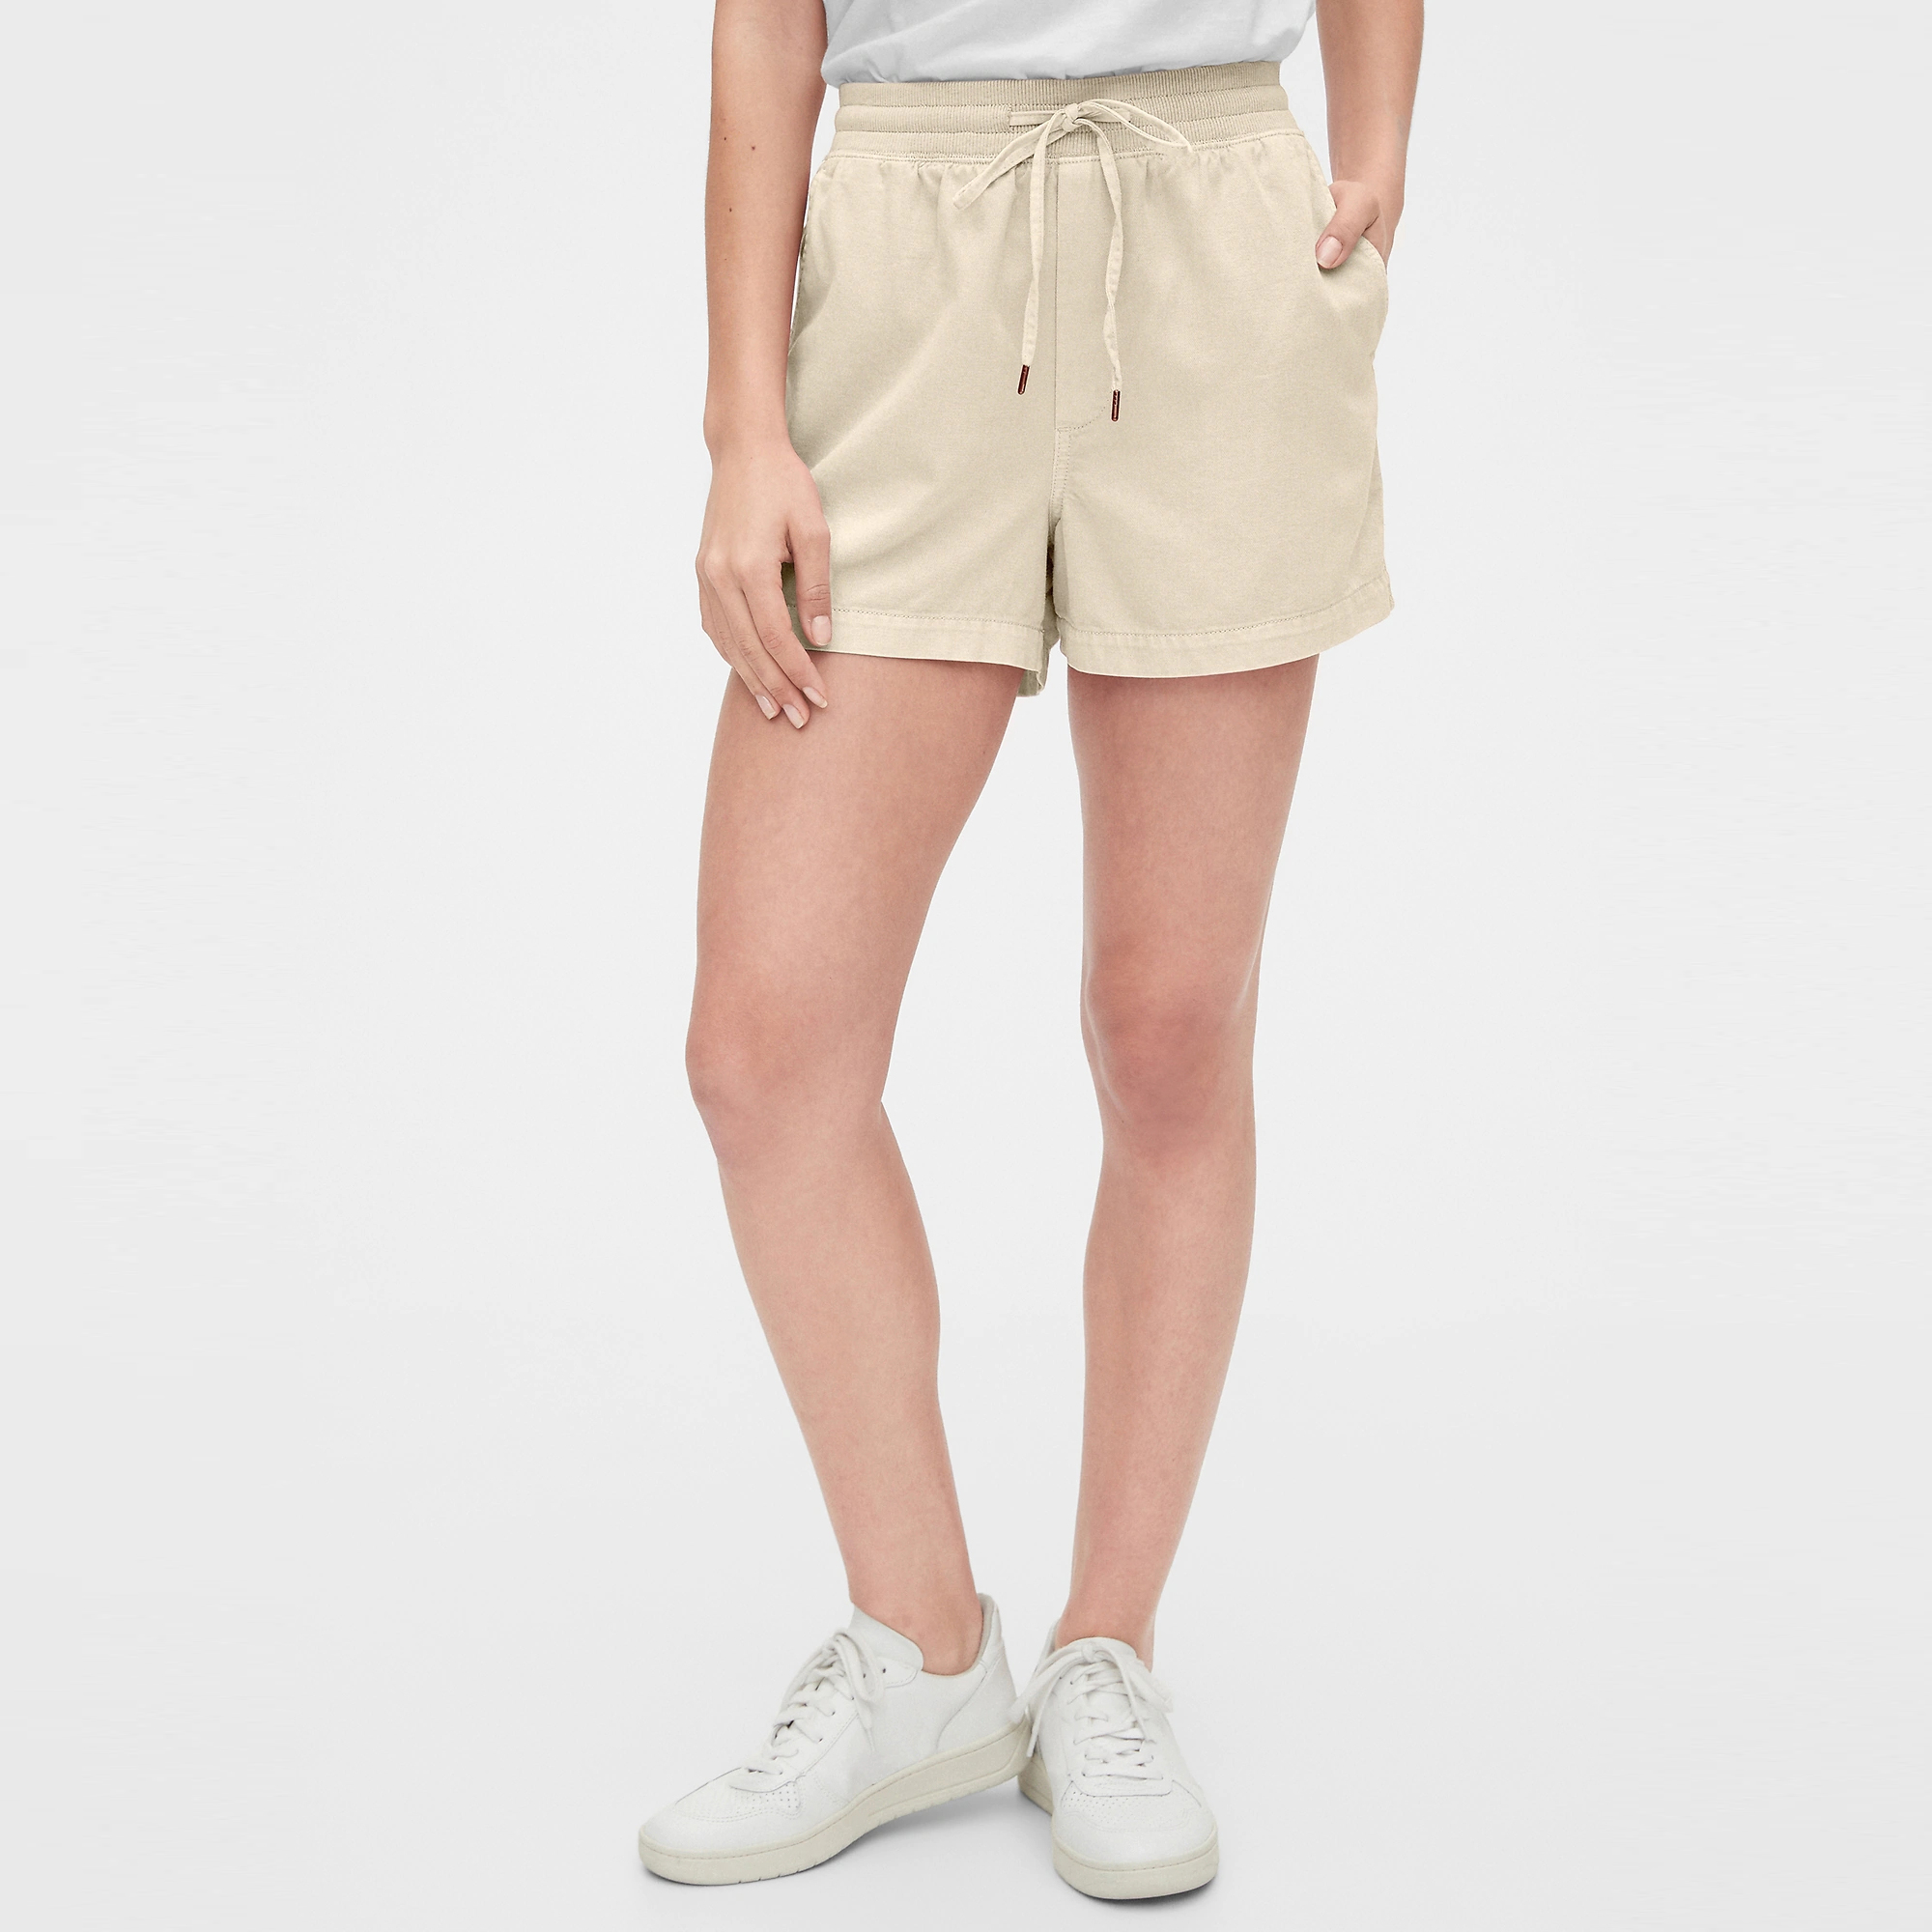 GAP Textil Shorts Pull On Shorts - Stone 543310-682